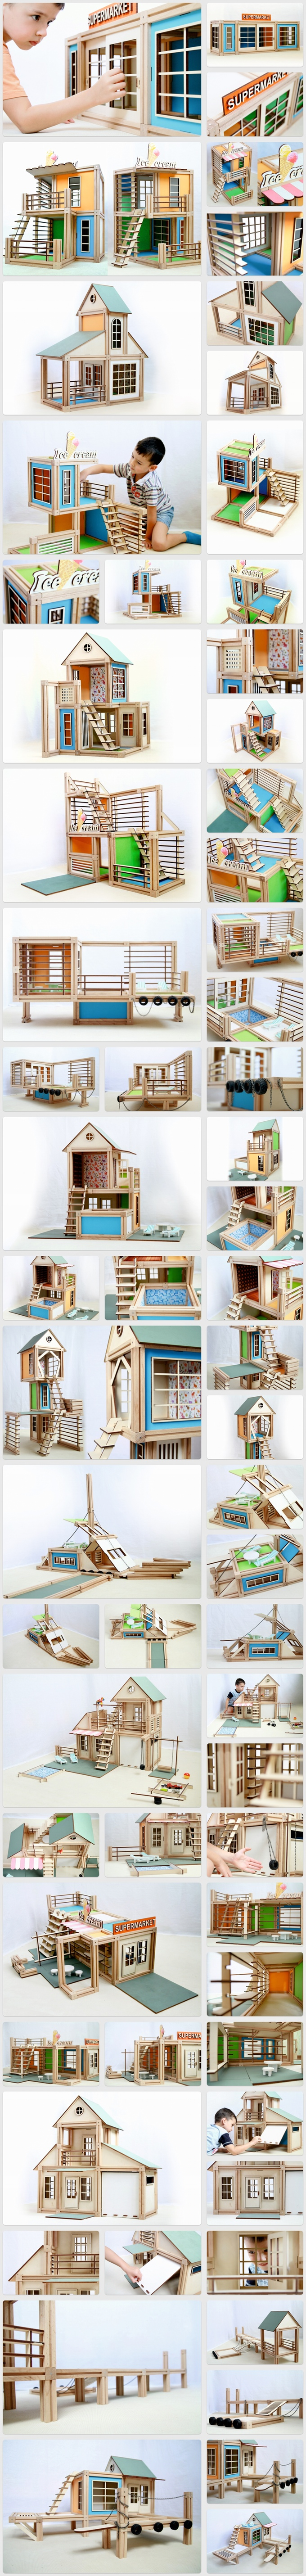 Wooden magnetic architectural toy a building block set for